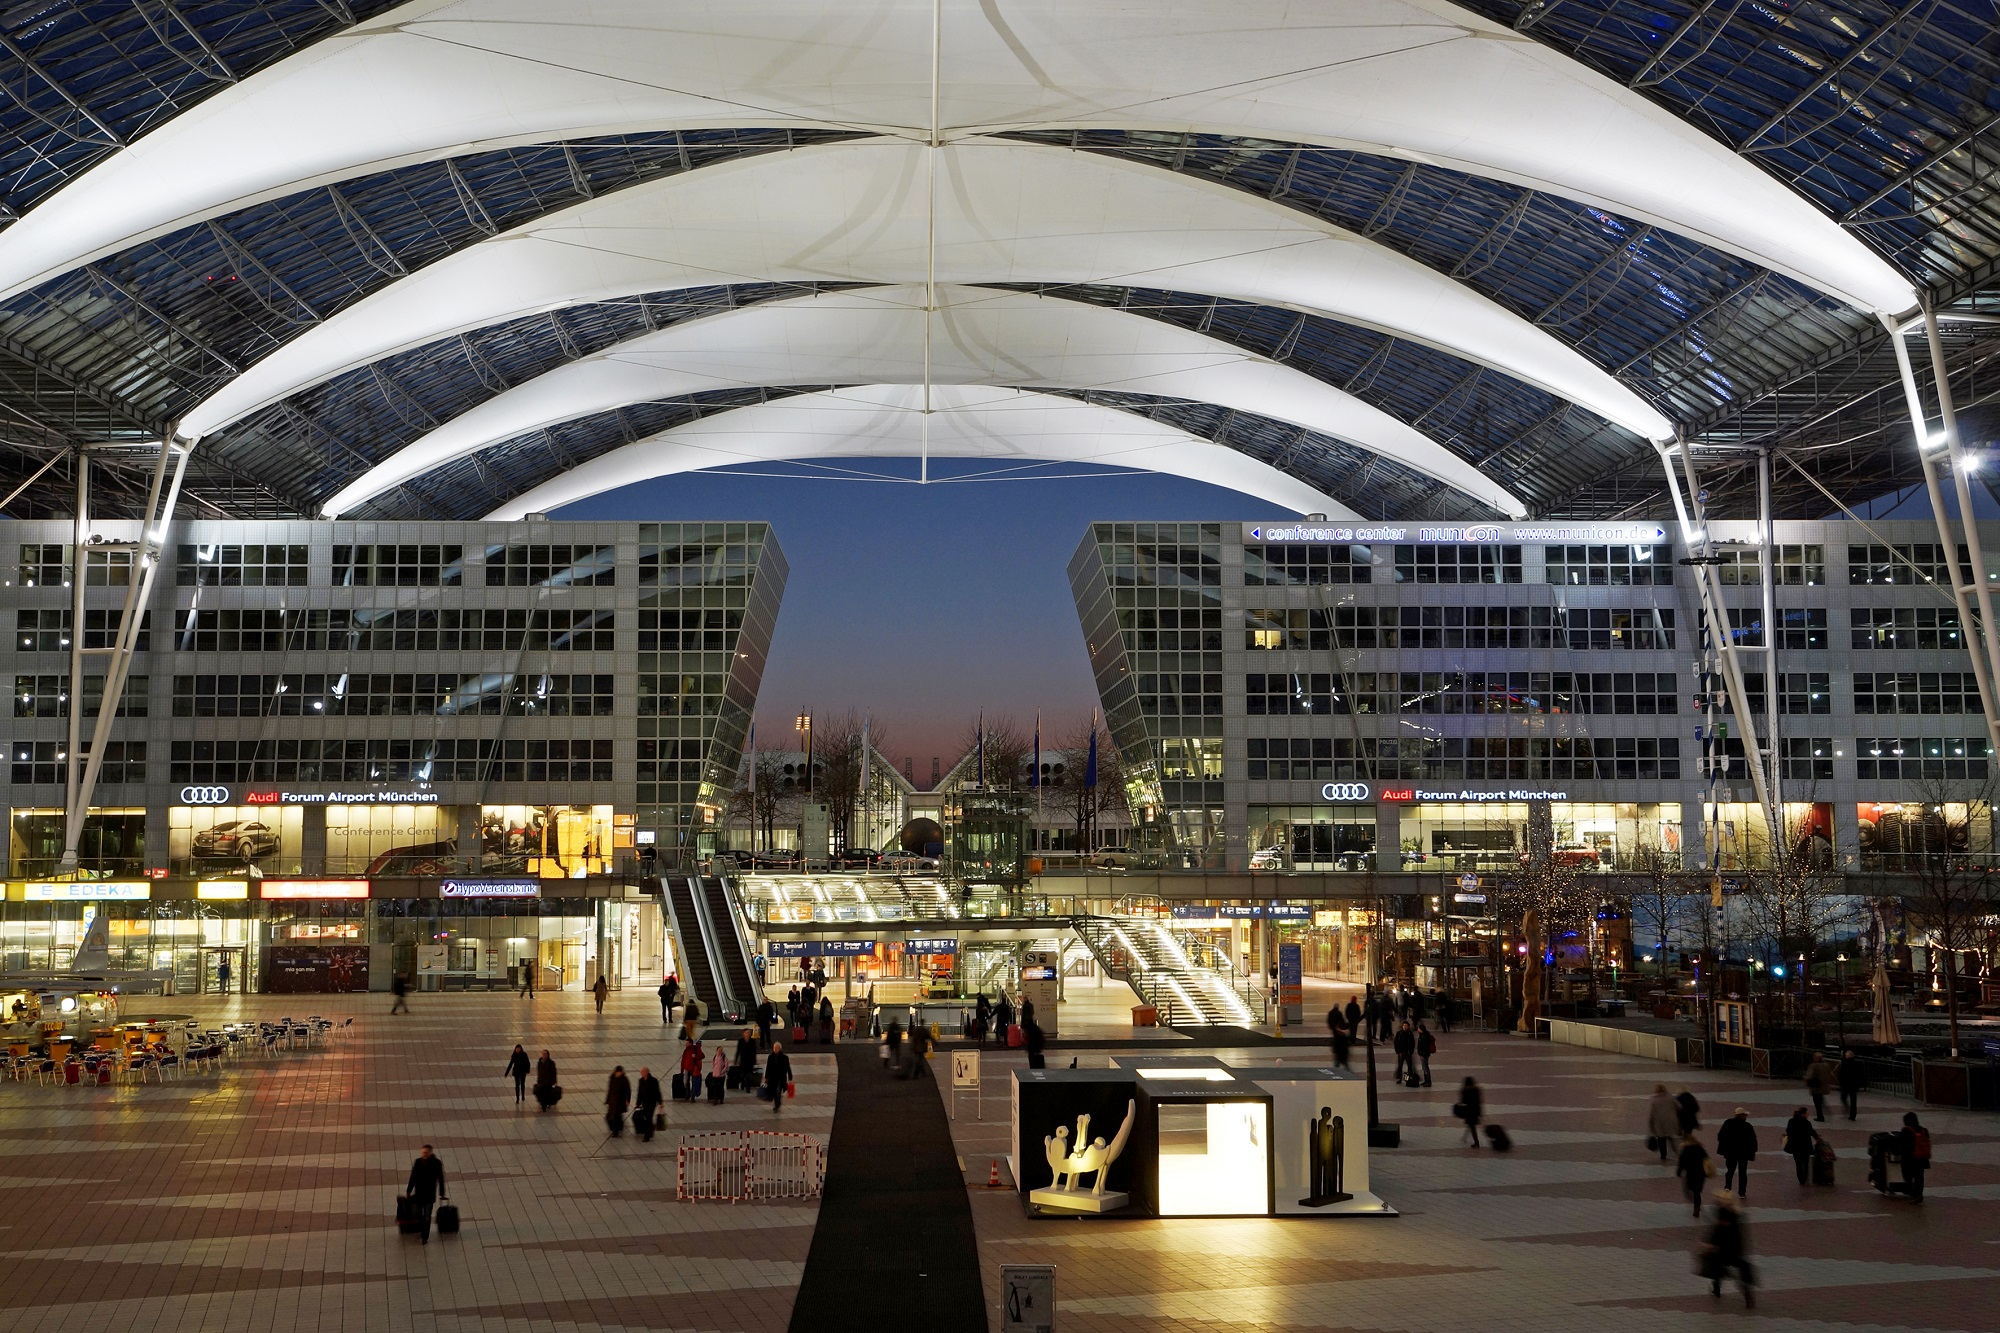 The Munich, Germany airport is seriously one of the best out there.